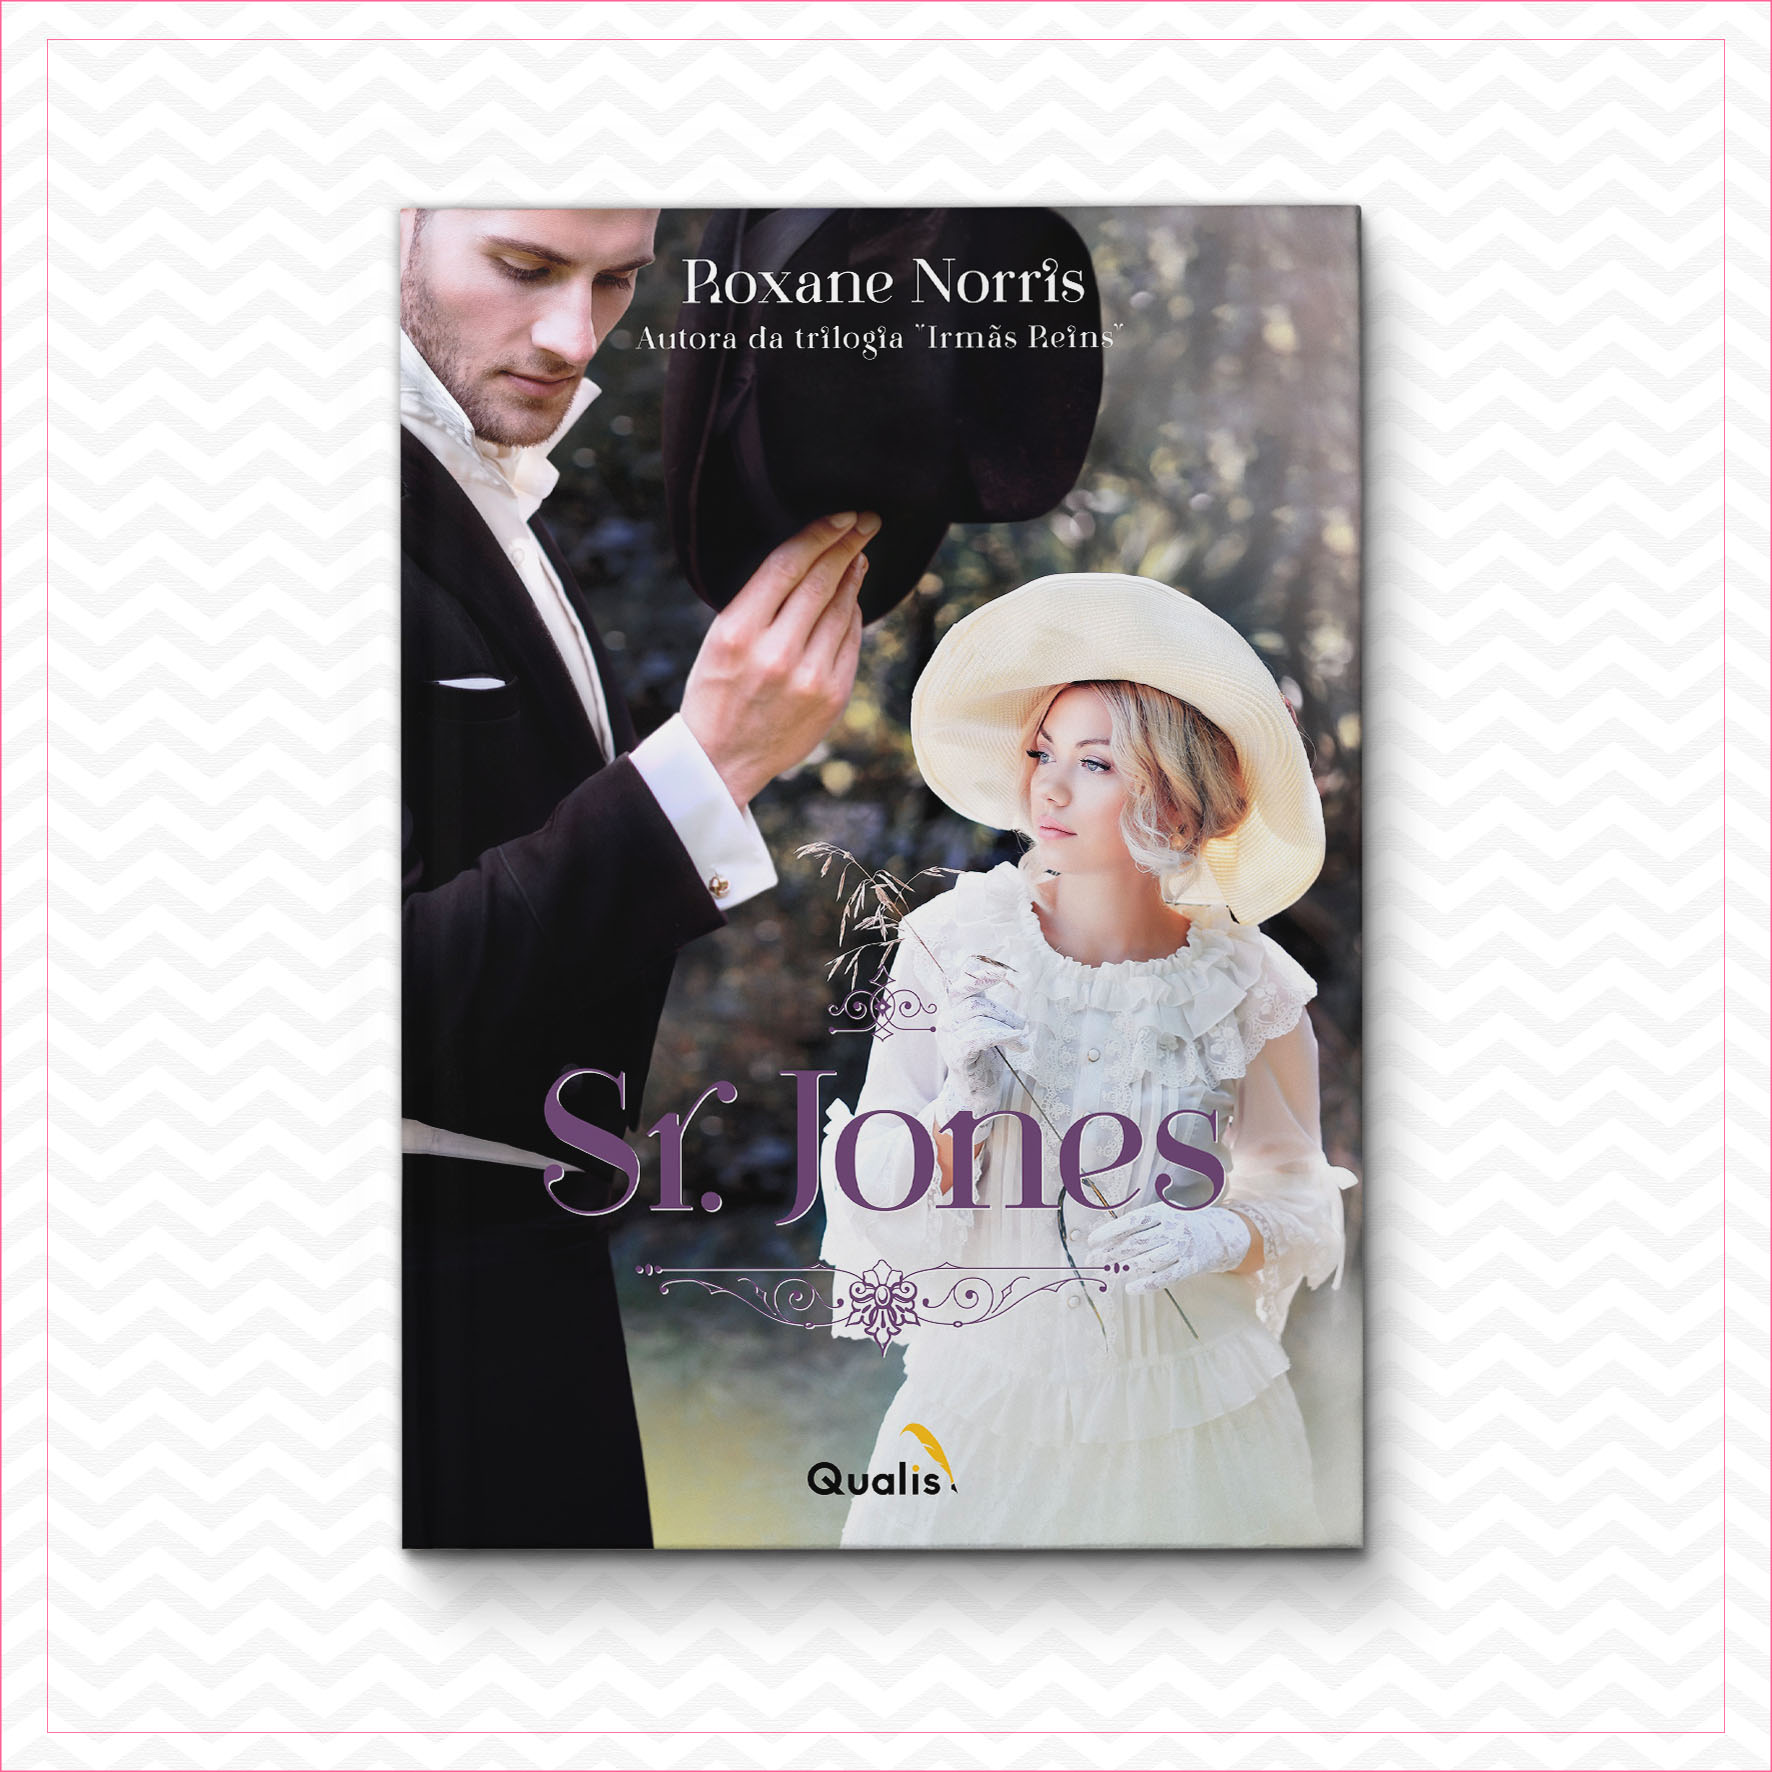 Sr. Jones – Roxane Norris